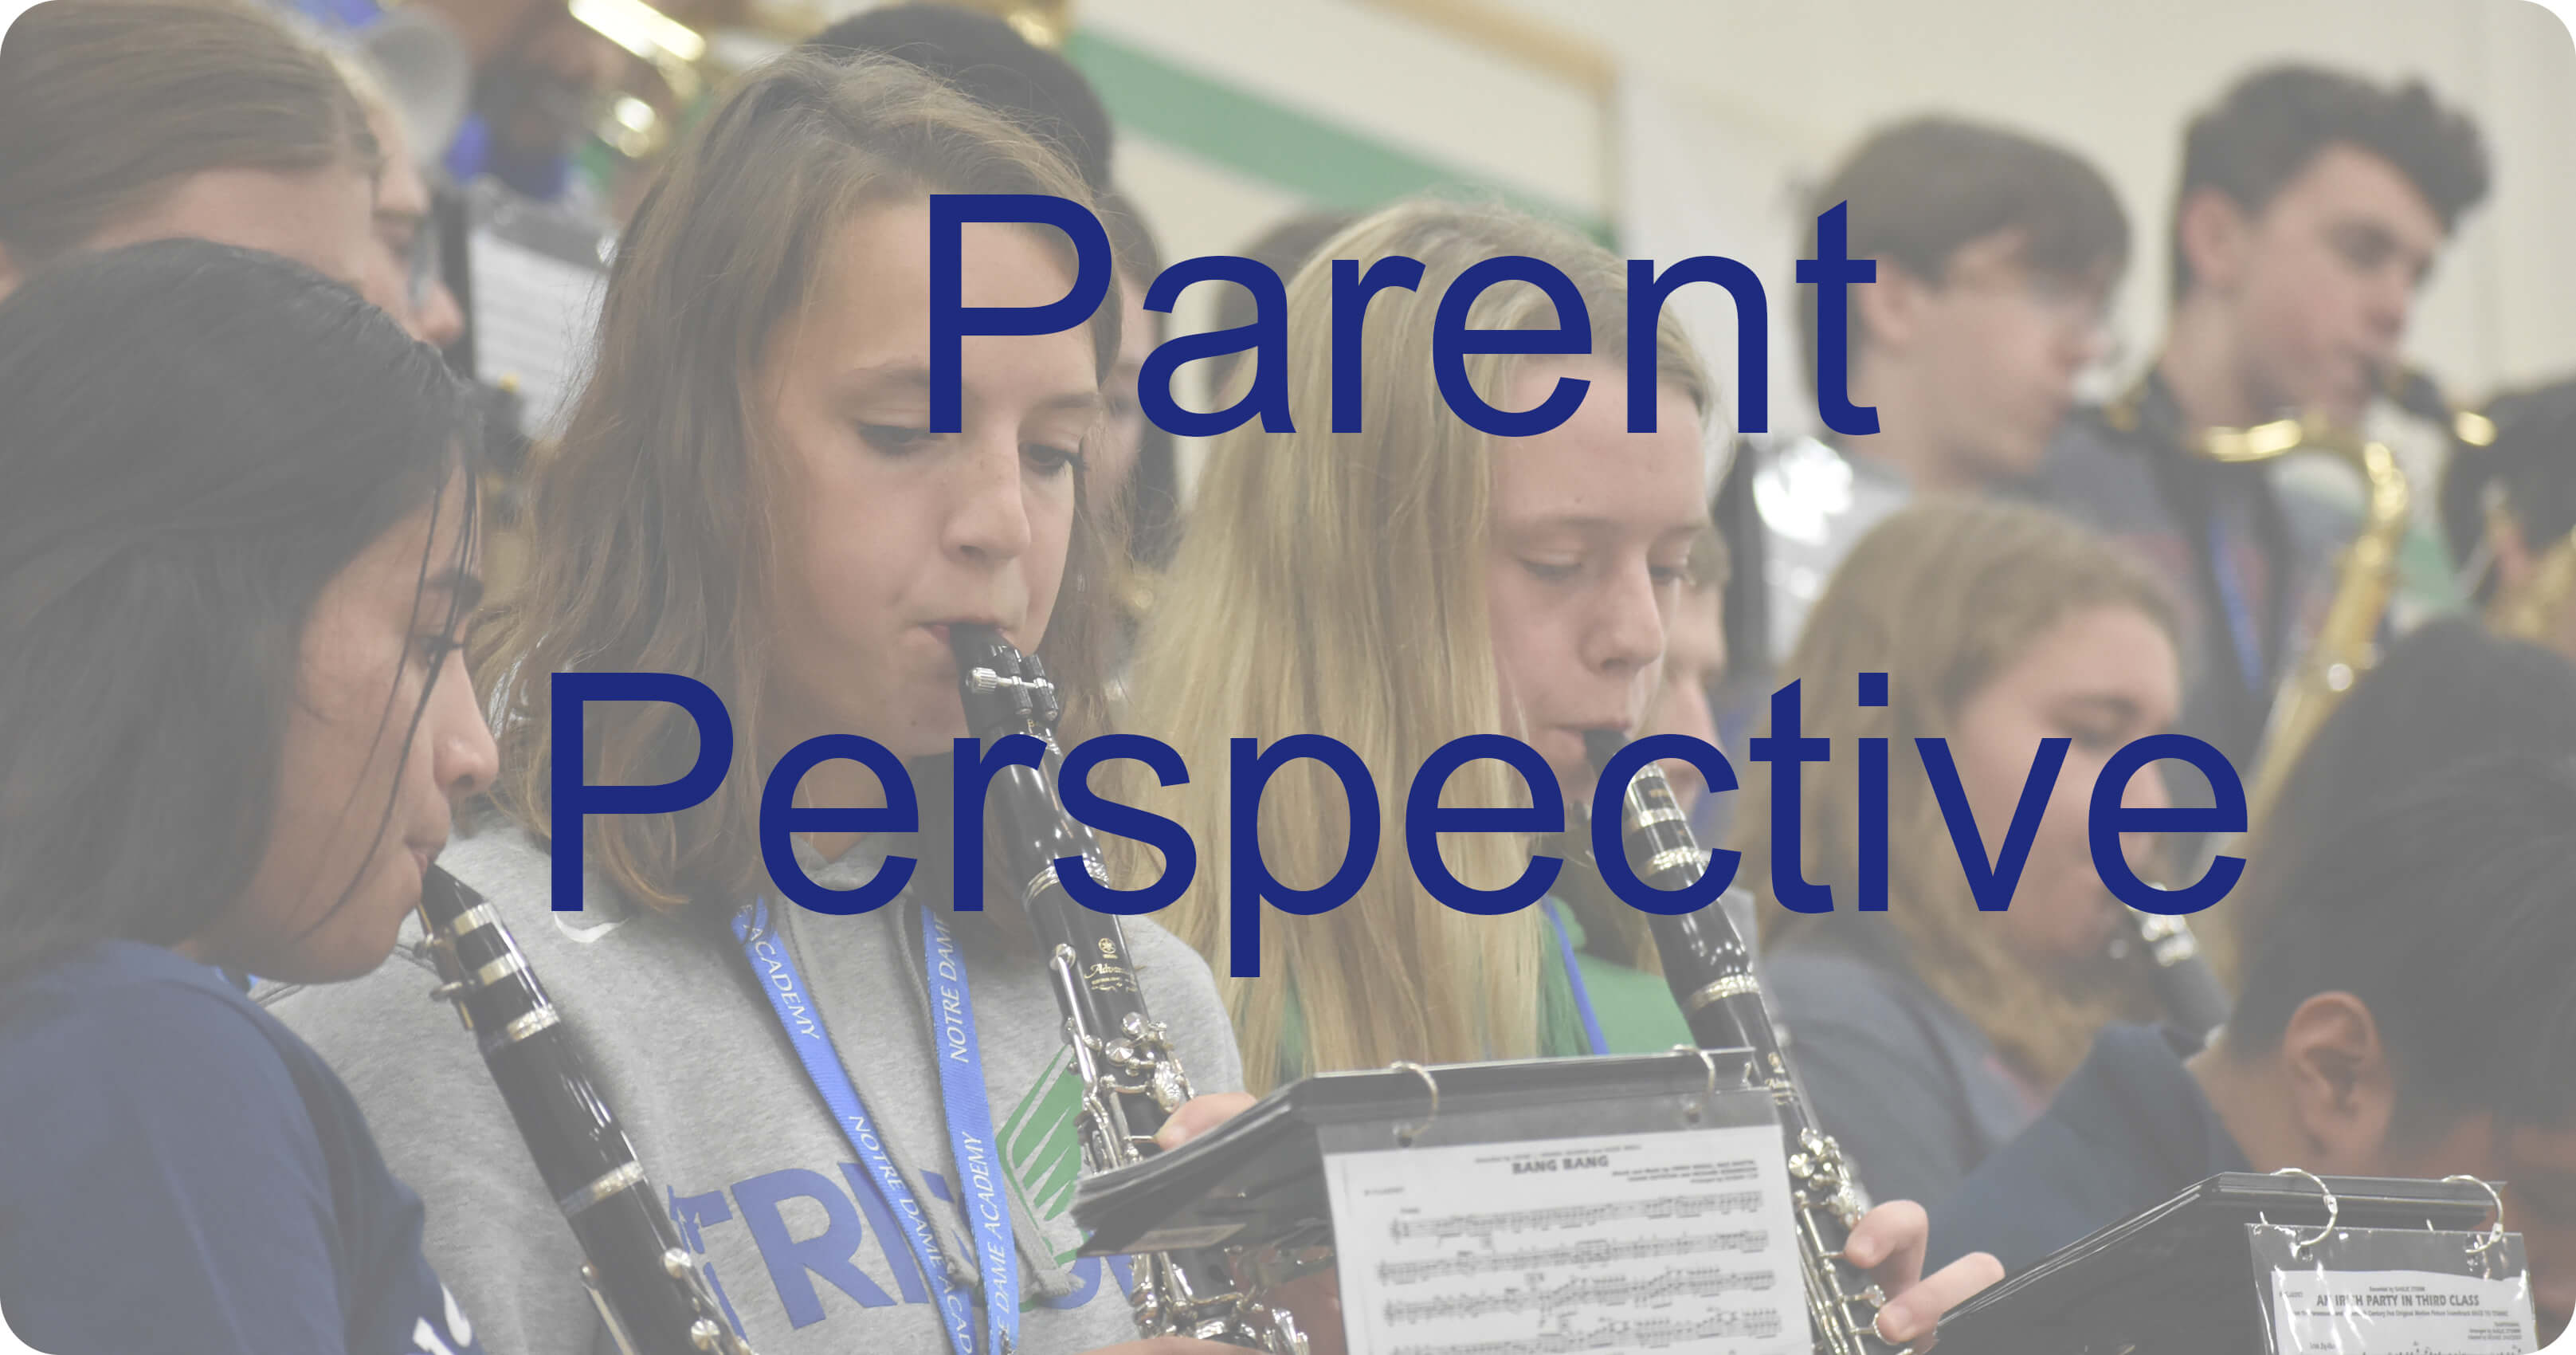 Photo of band students with text reading Parent Perspective